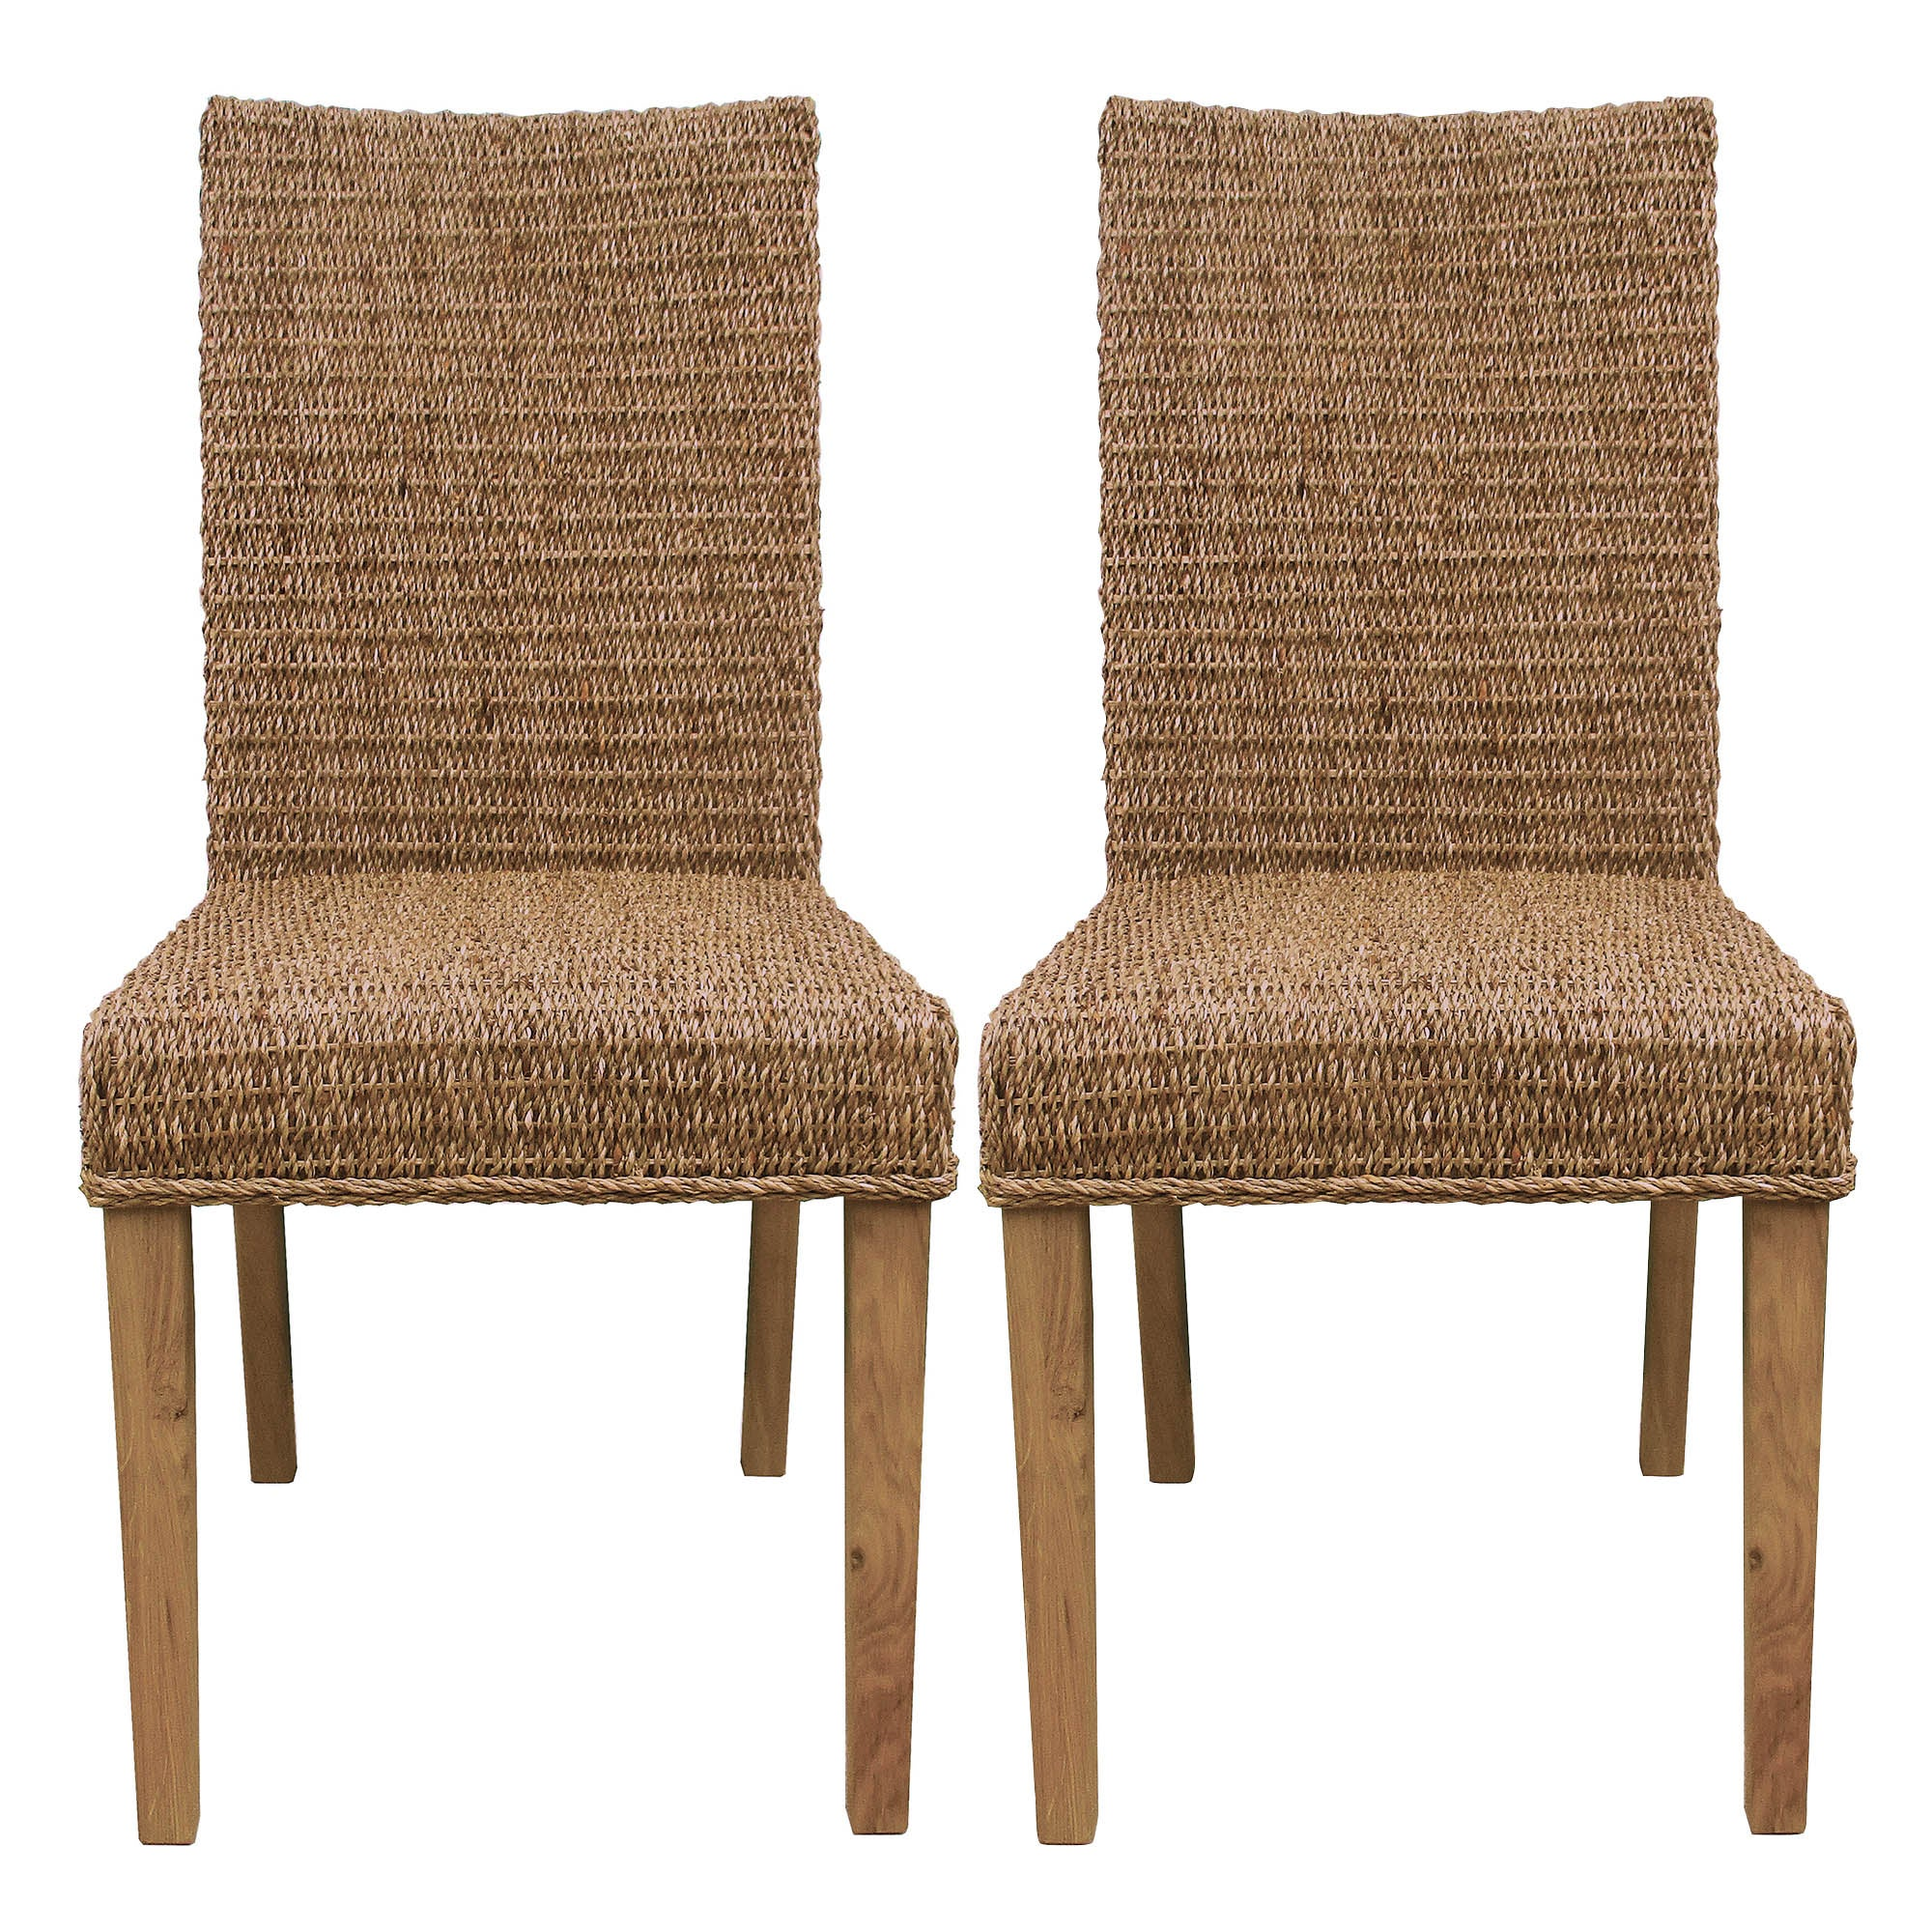 Photo of Sidmouth pair of dining chairs mid oak -brown-